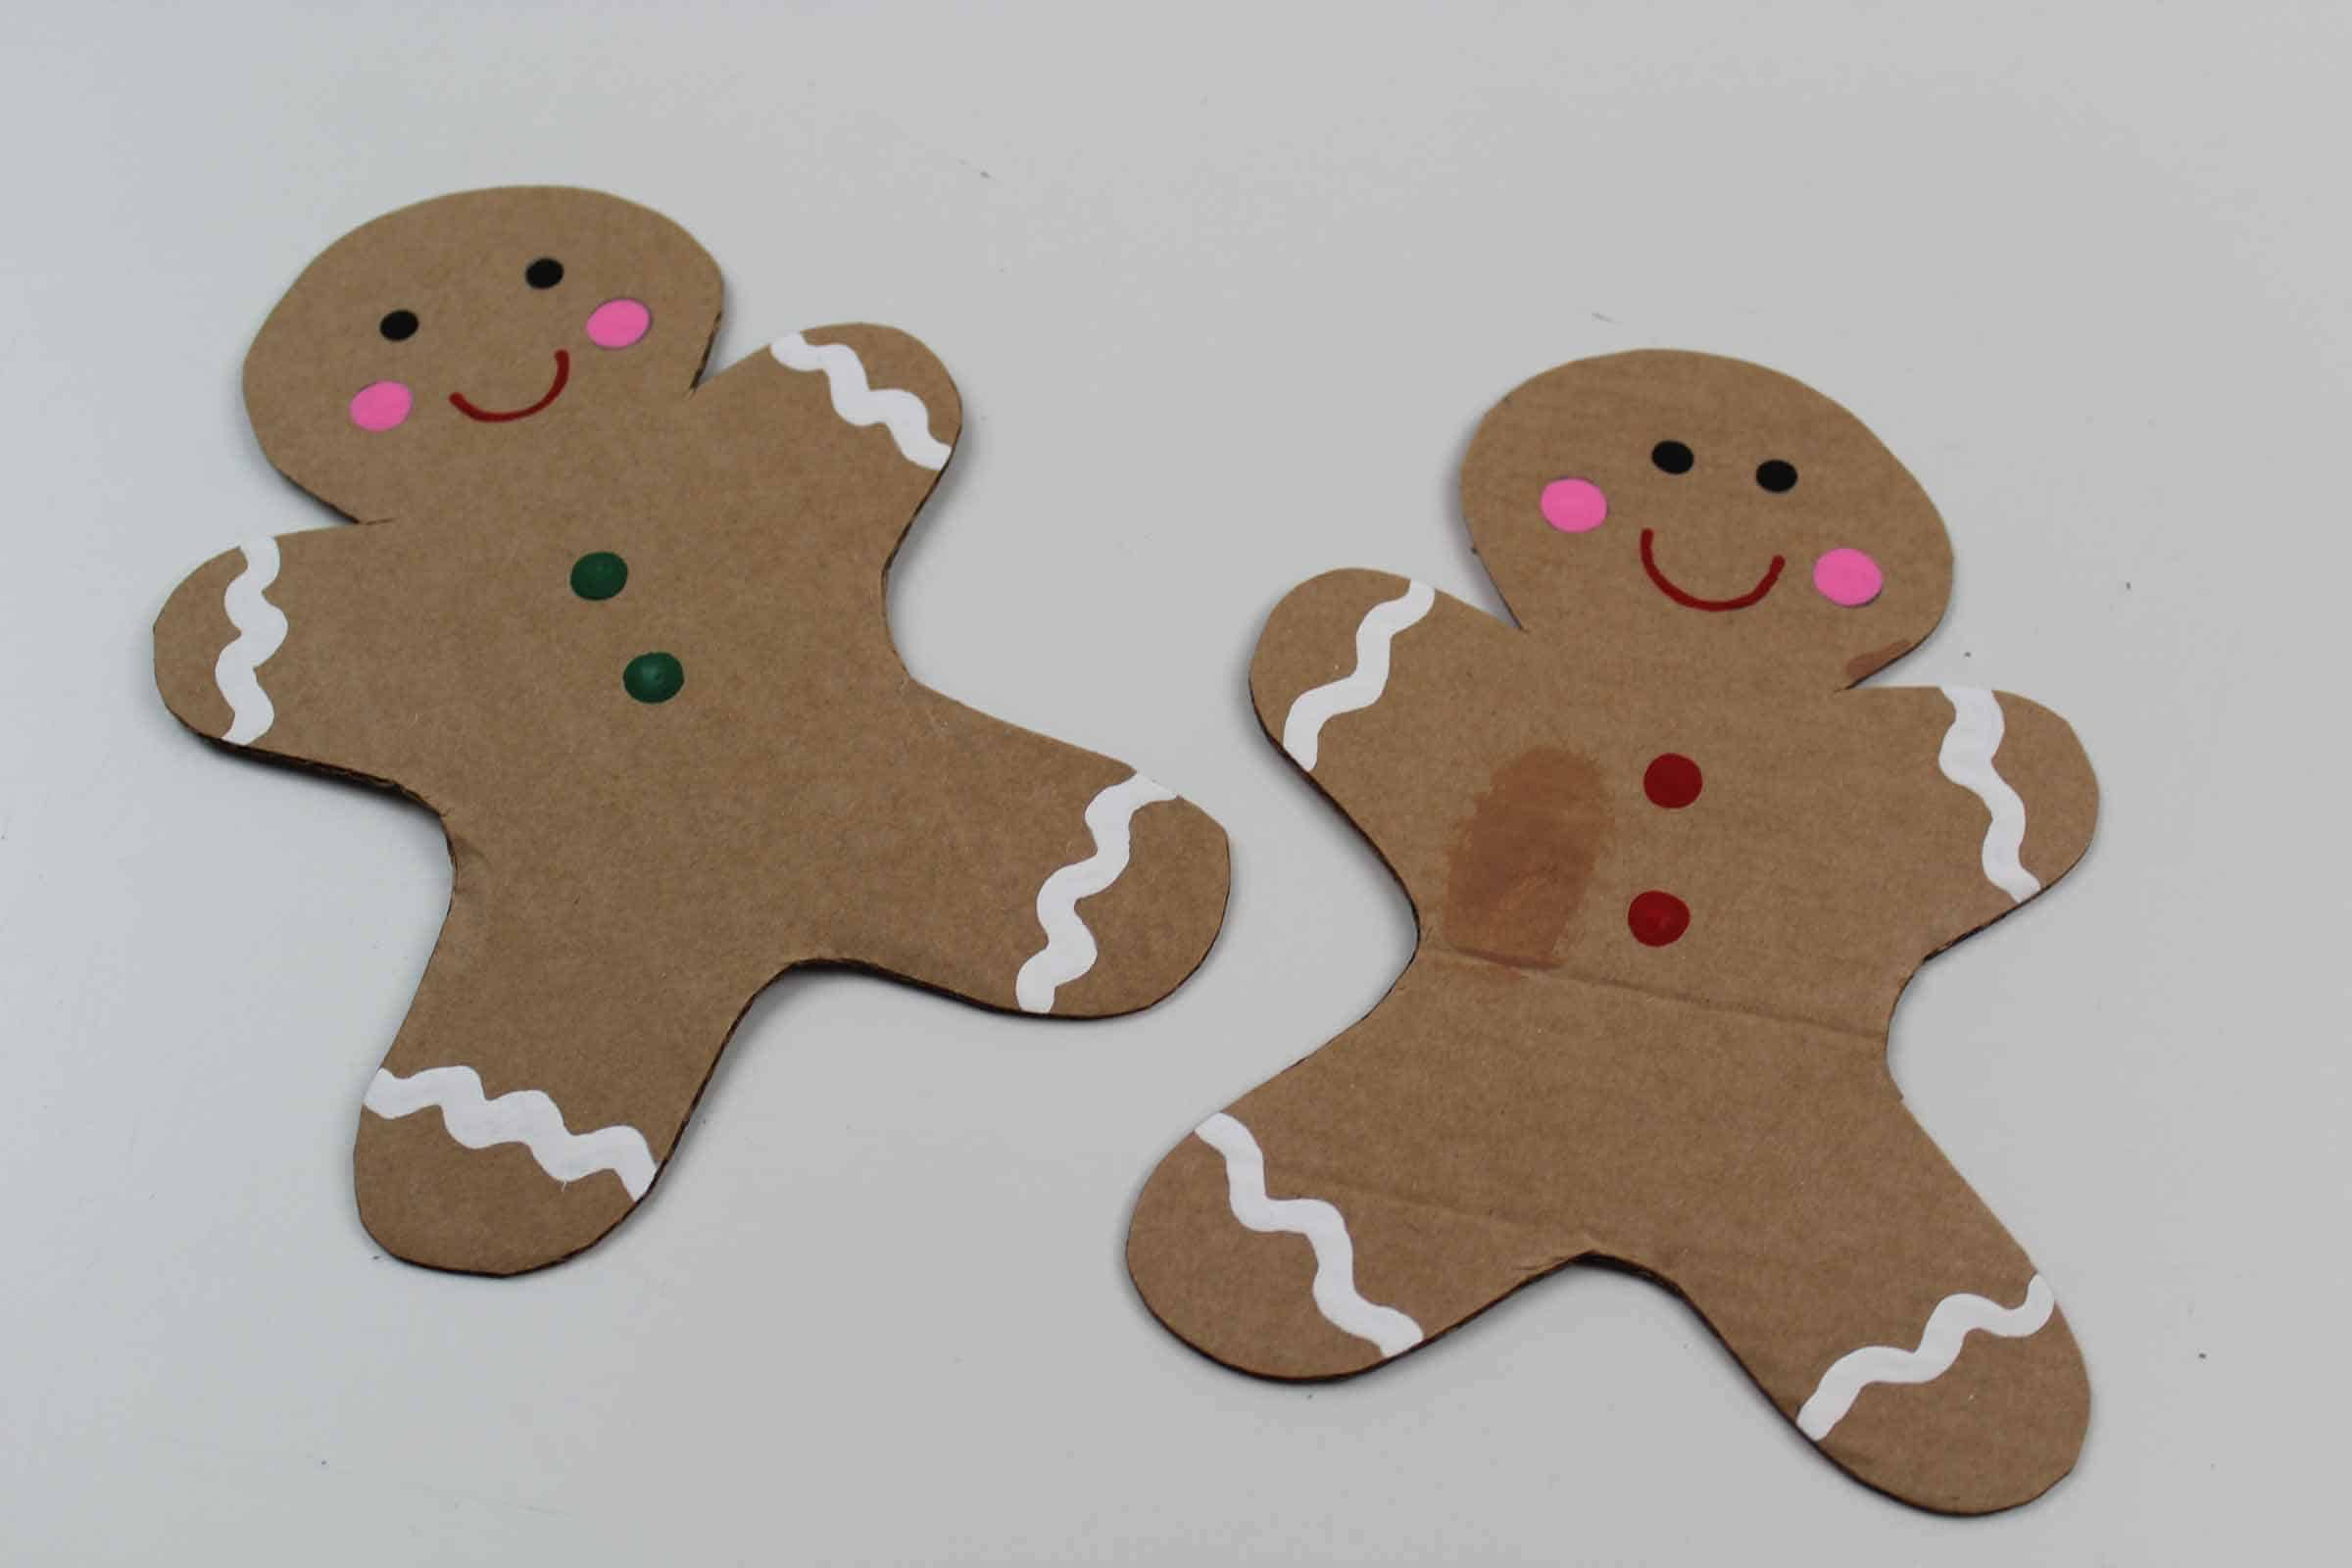 Painted gingerbread men